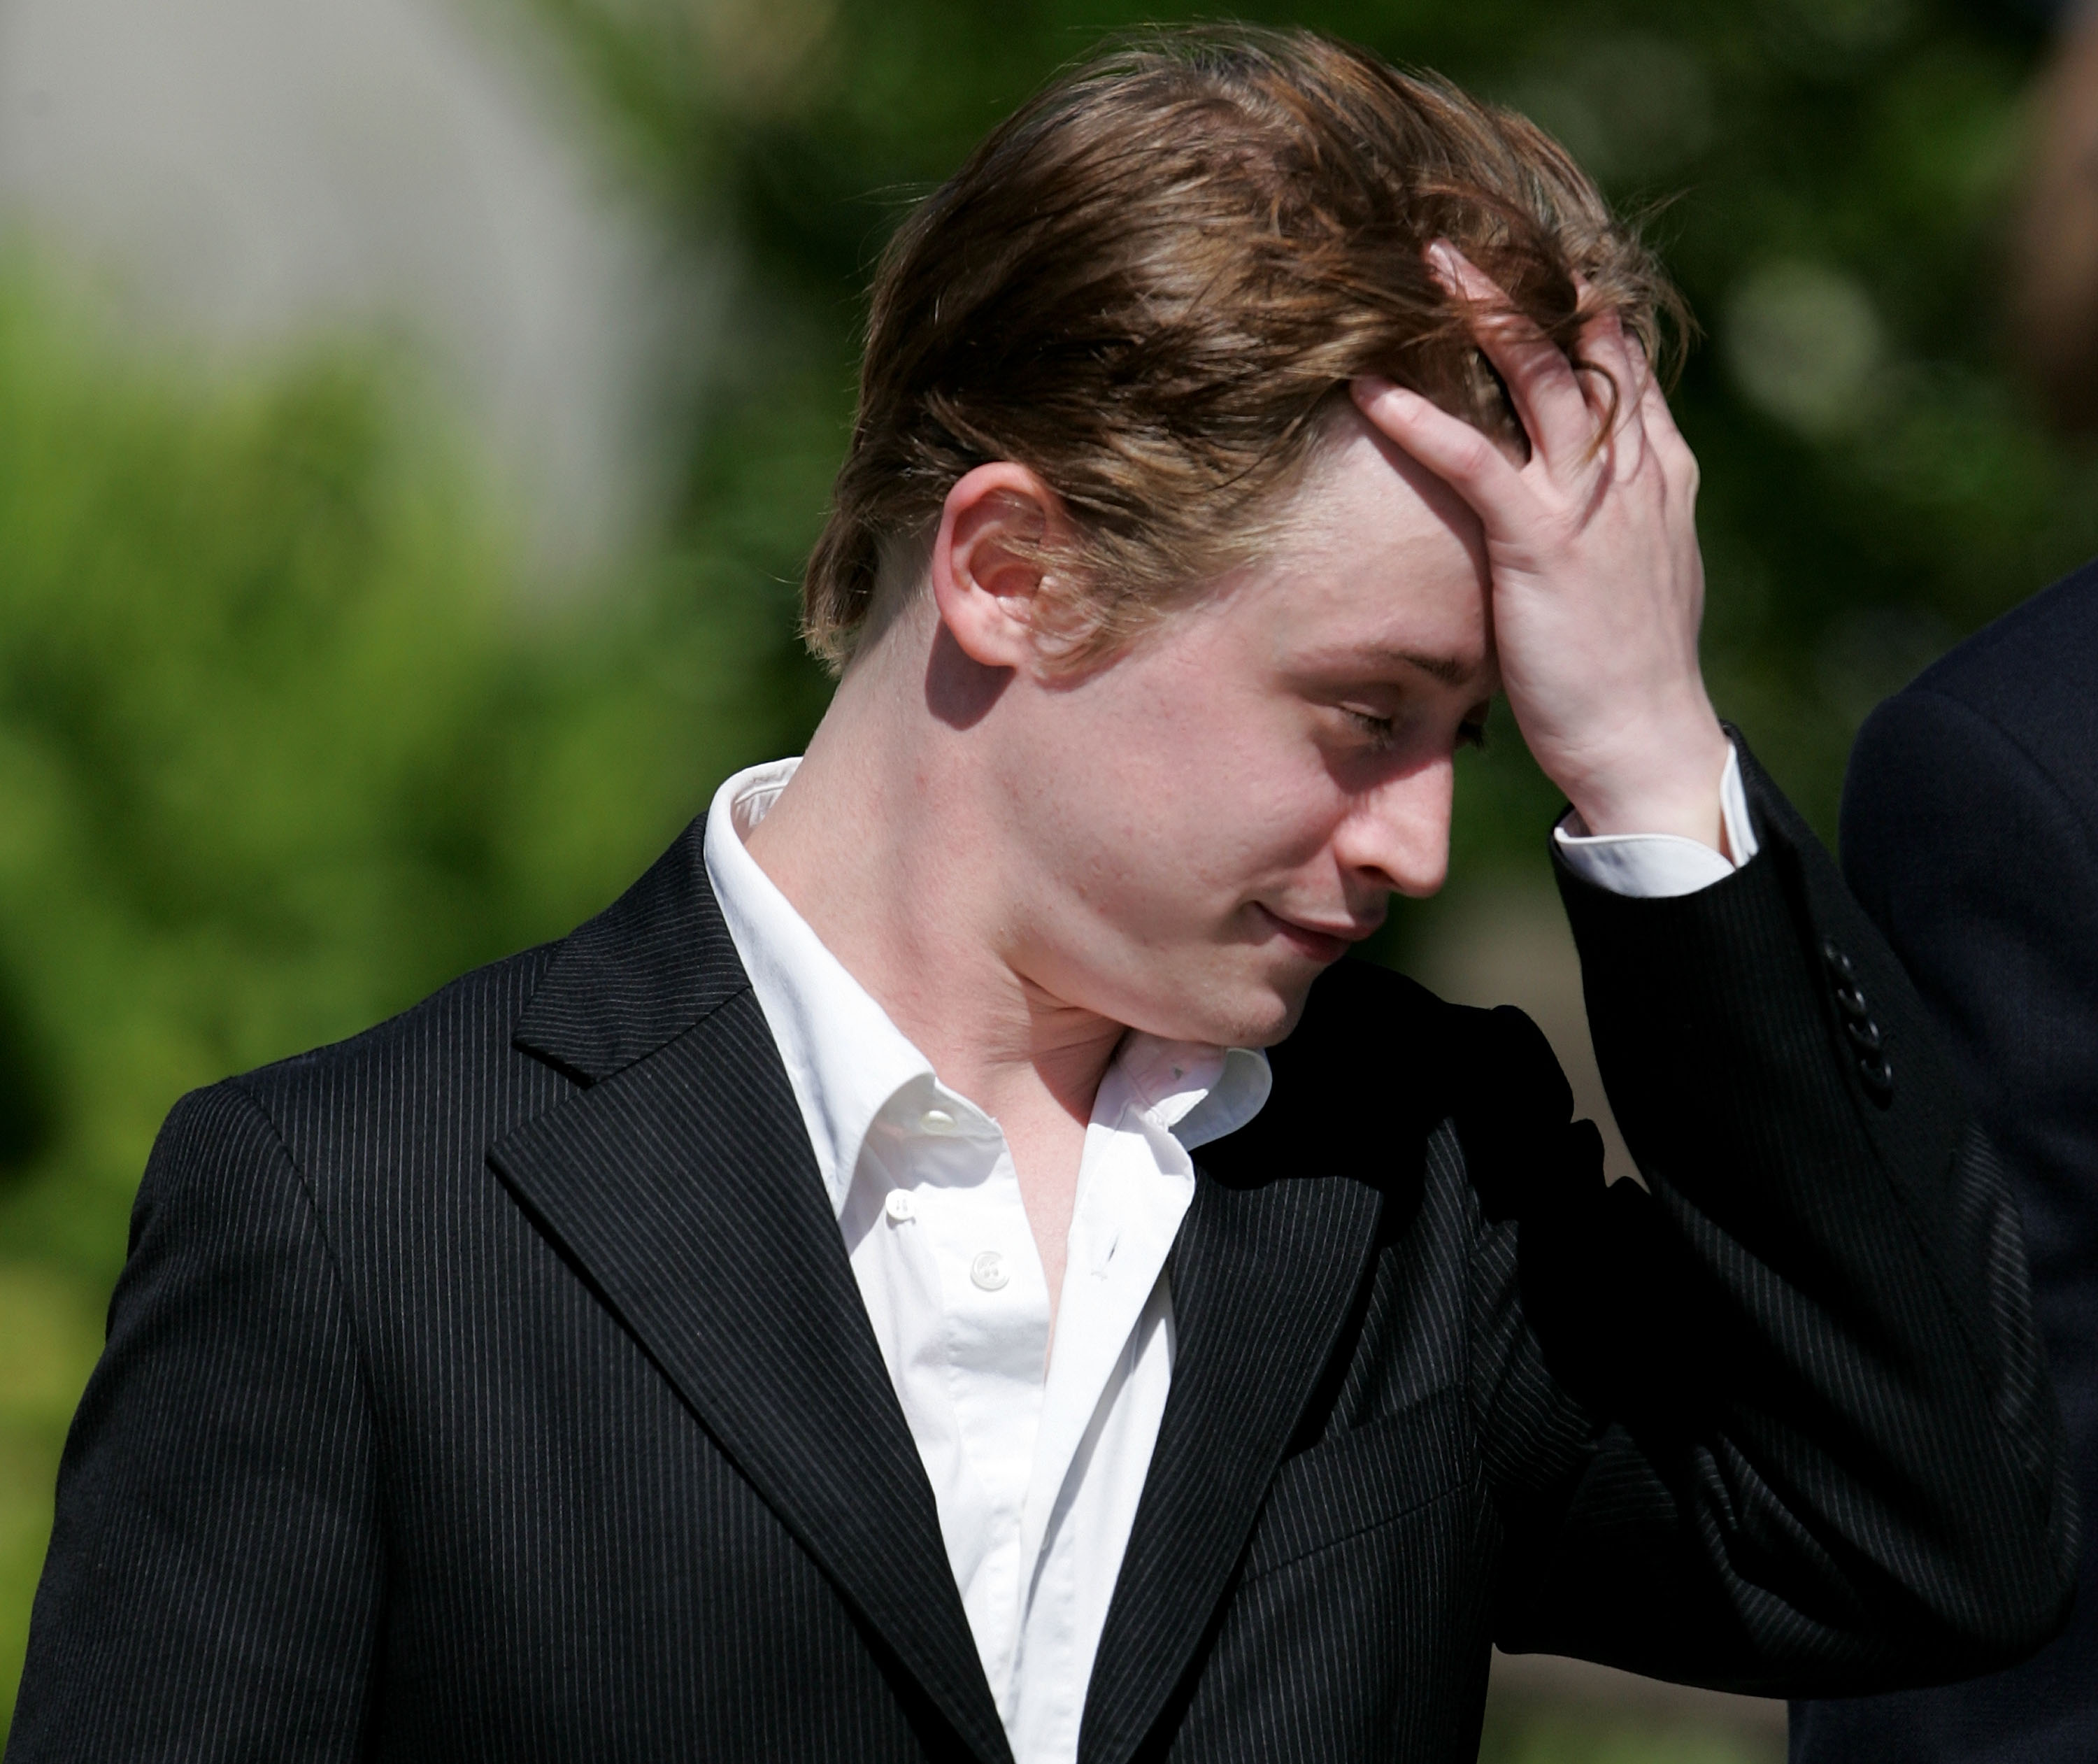 Actor Macaulay Culkin leaves the Santa Barbara County Courthouse after testifying in Michael Jackson's child molestation trial May 11, 2005 in Santa Maria, California. Jackson is charged in a 10-count indictment with molesting a boy, plying him with liquor and conspiring to commit child abduction, false imprisonment and extortion. (Getty Images)